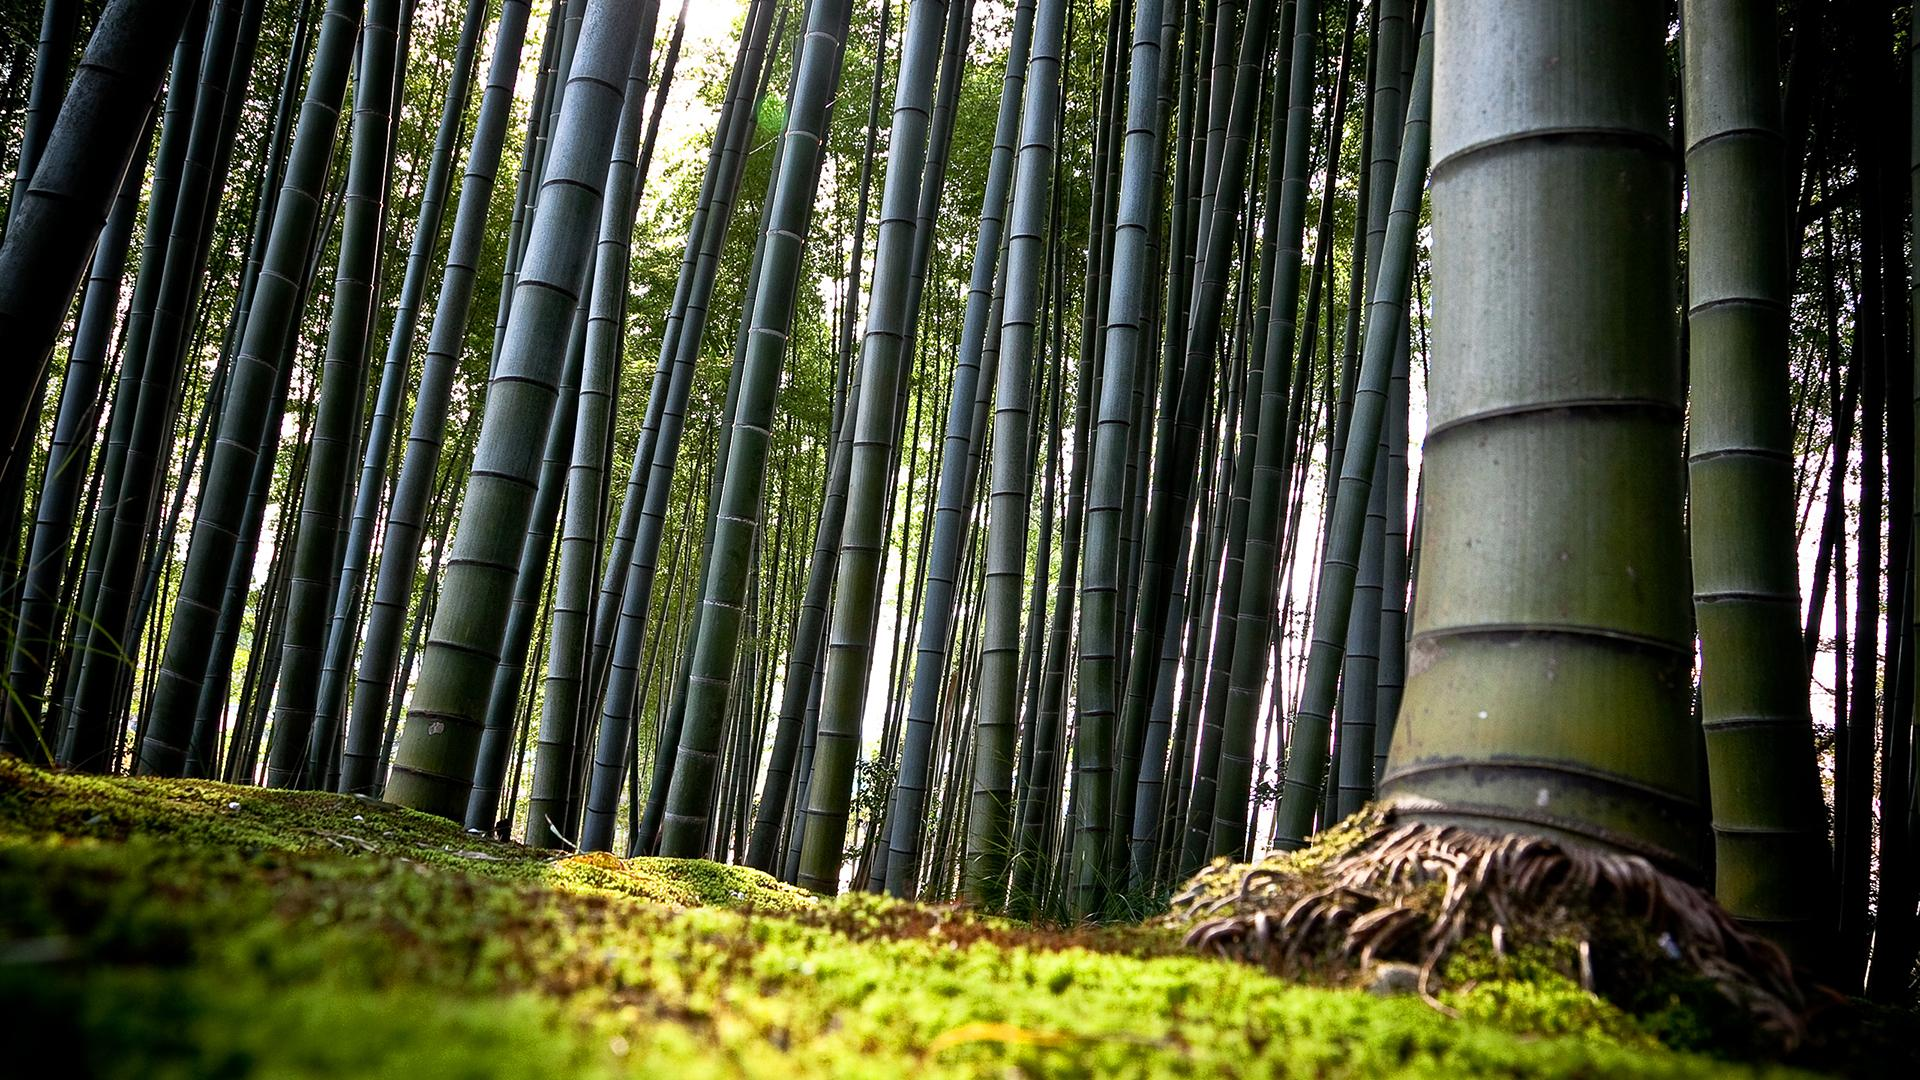 Nature Hd 3d Wallpapers 1080p Widescreen Bamboo Forest Hd Wallpaper Pixelstalk Net